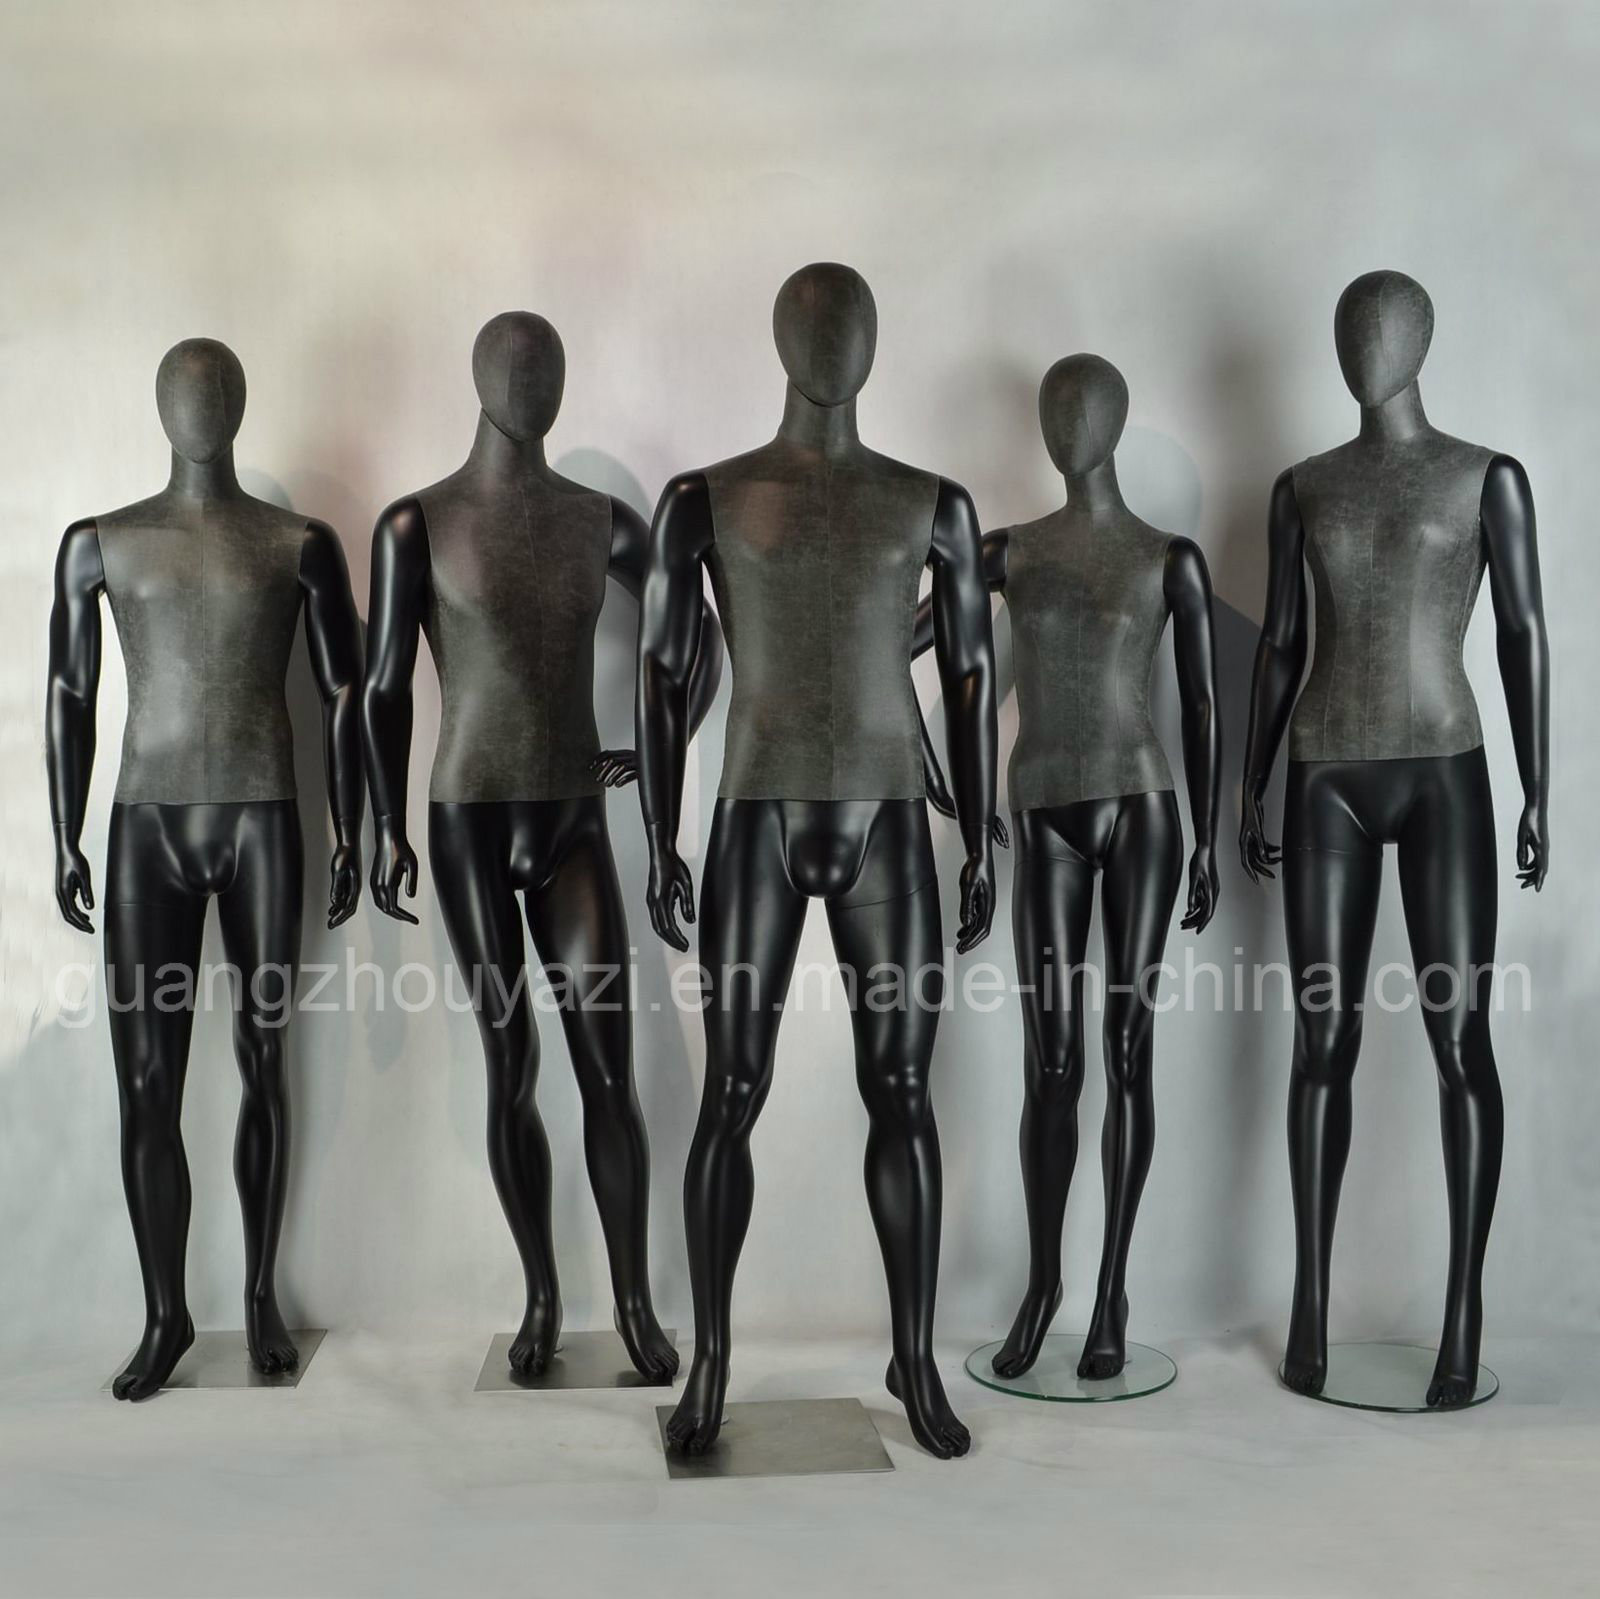 PU Mannequin Lether Mannequin